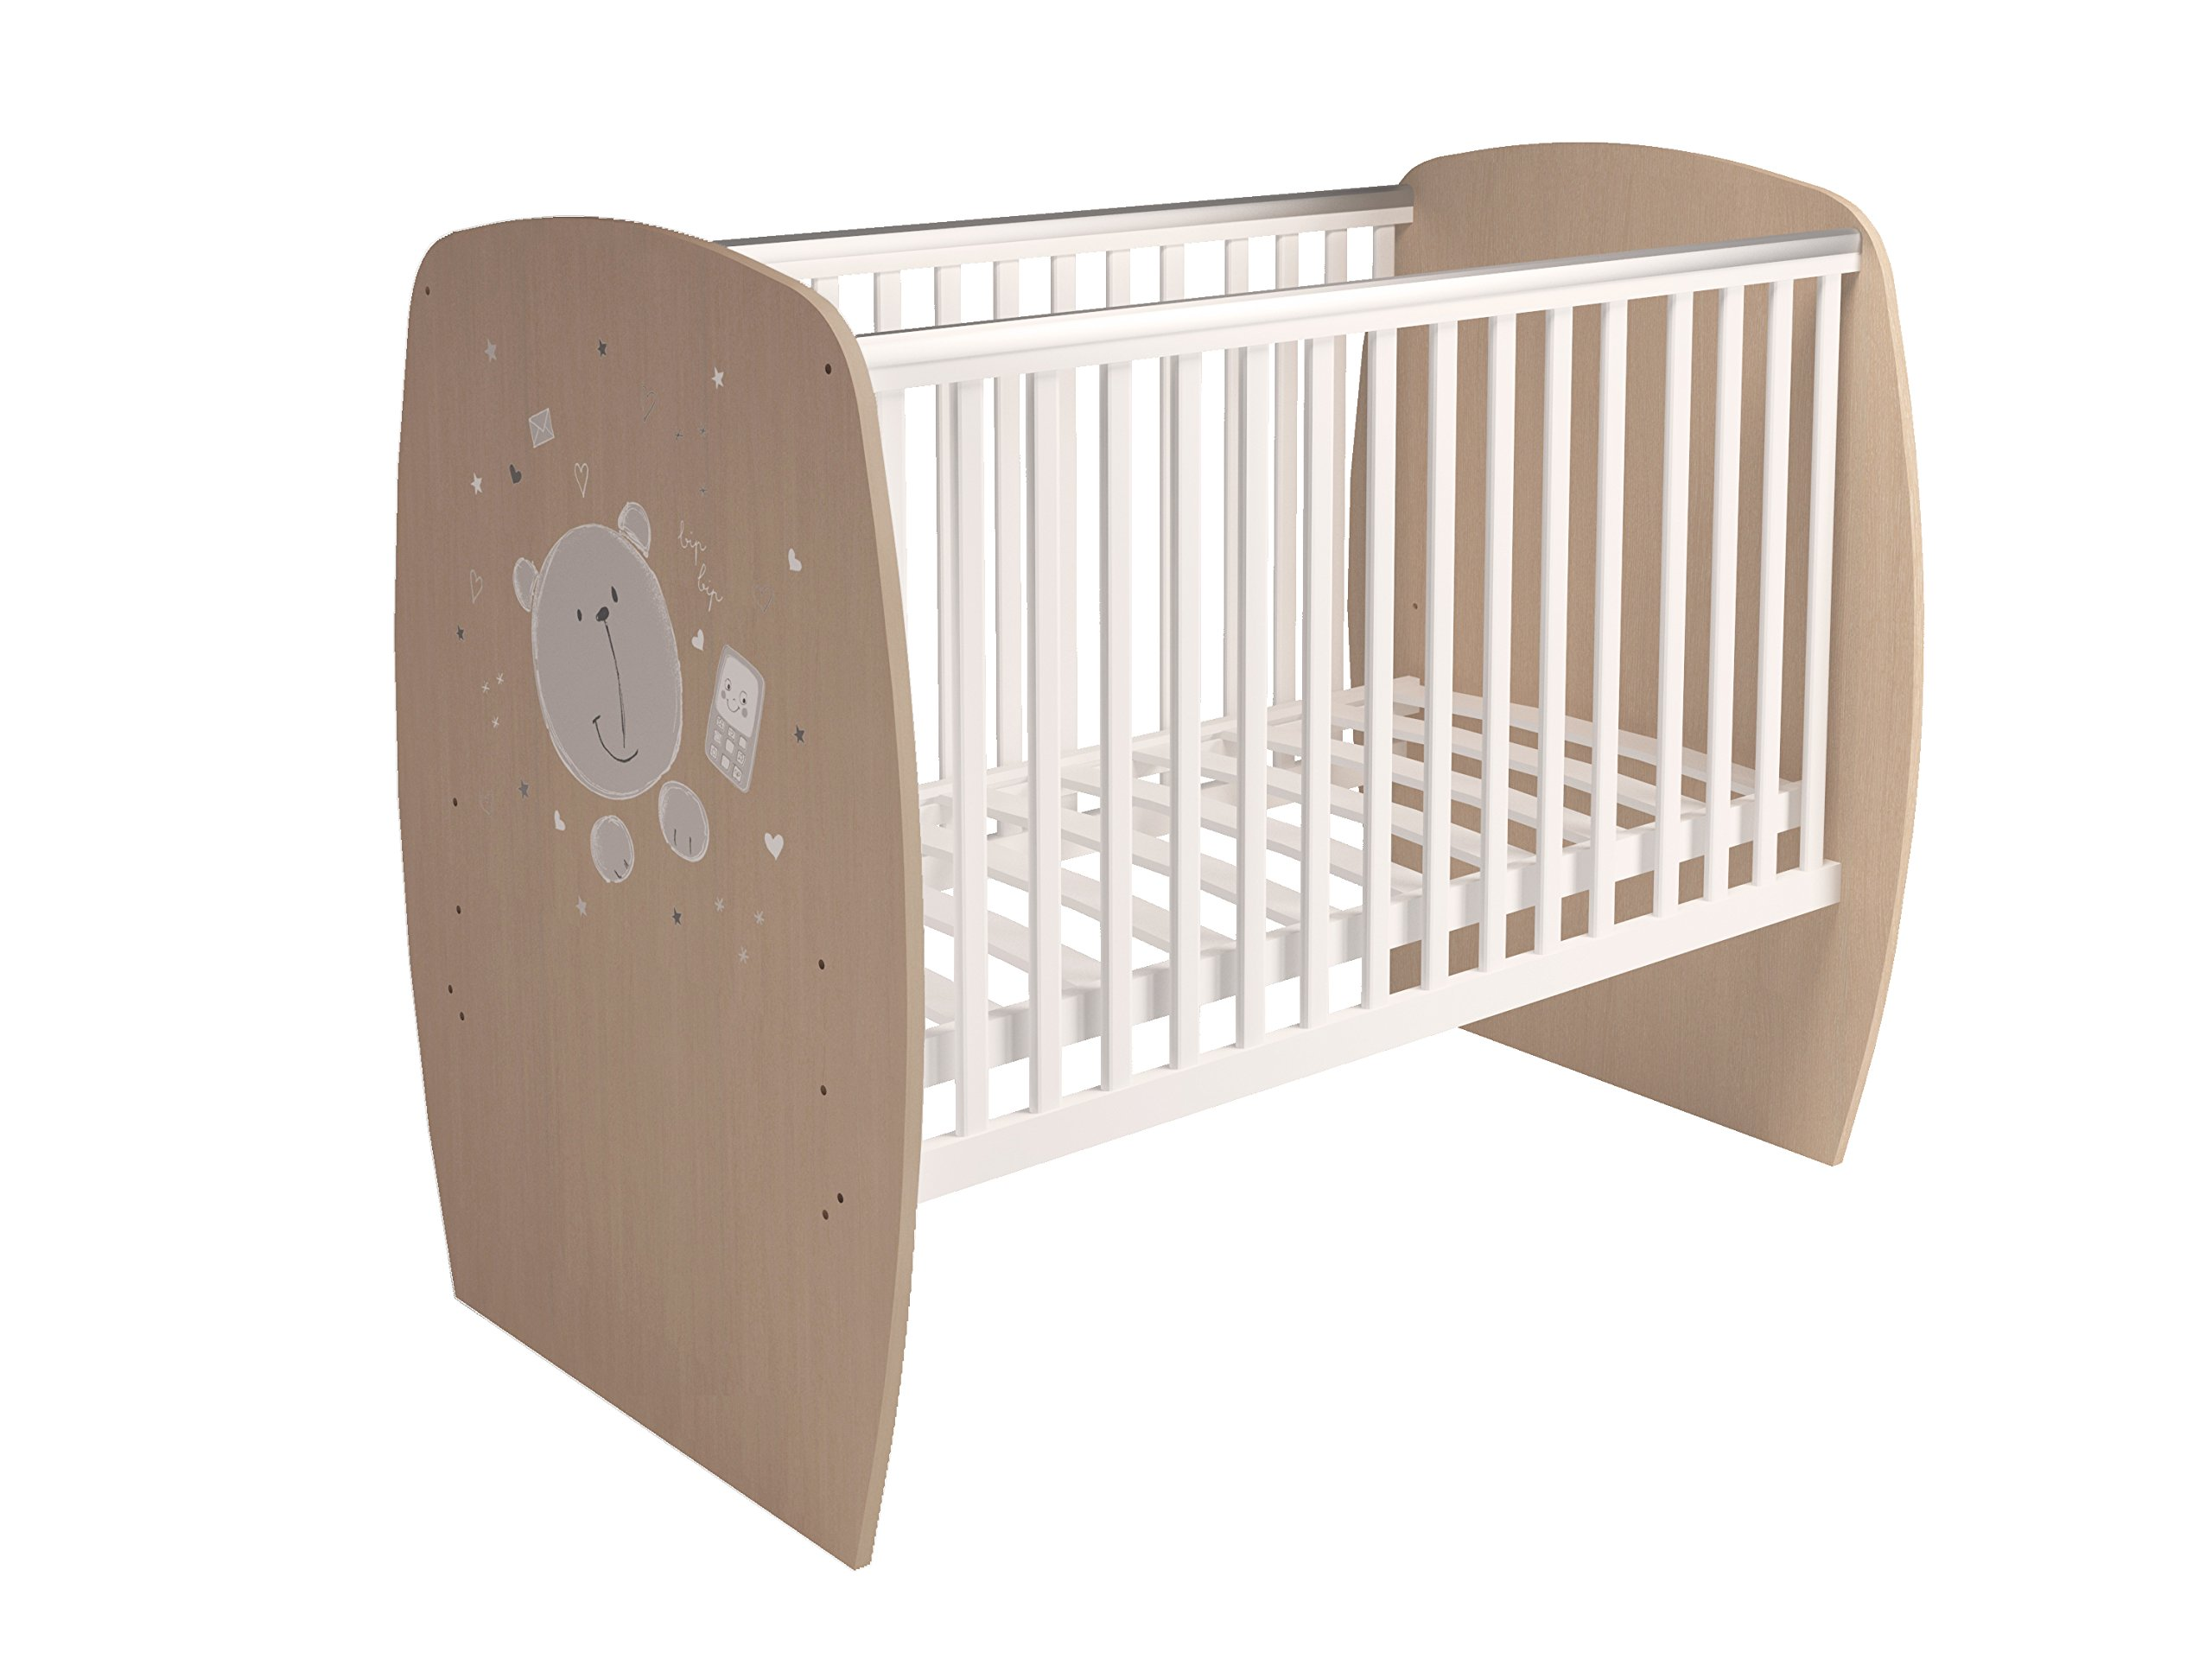 Polini Kids 0001527.62 French 700 Teddy Design Baby Cot, White-Pastel Oak Polini Kids 3 heights of the slatted bed base Protective PVC rails and soft-cornered bed sides Available with and without a drawer 2